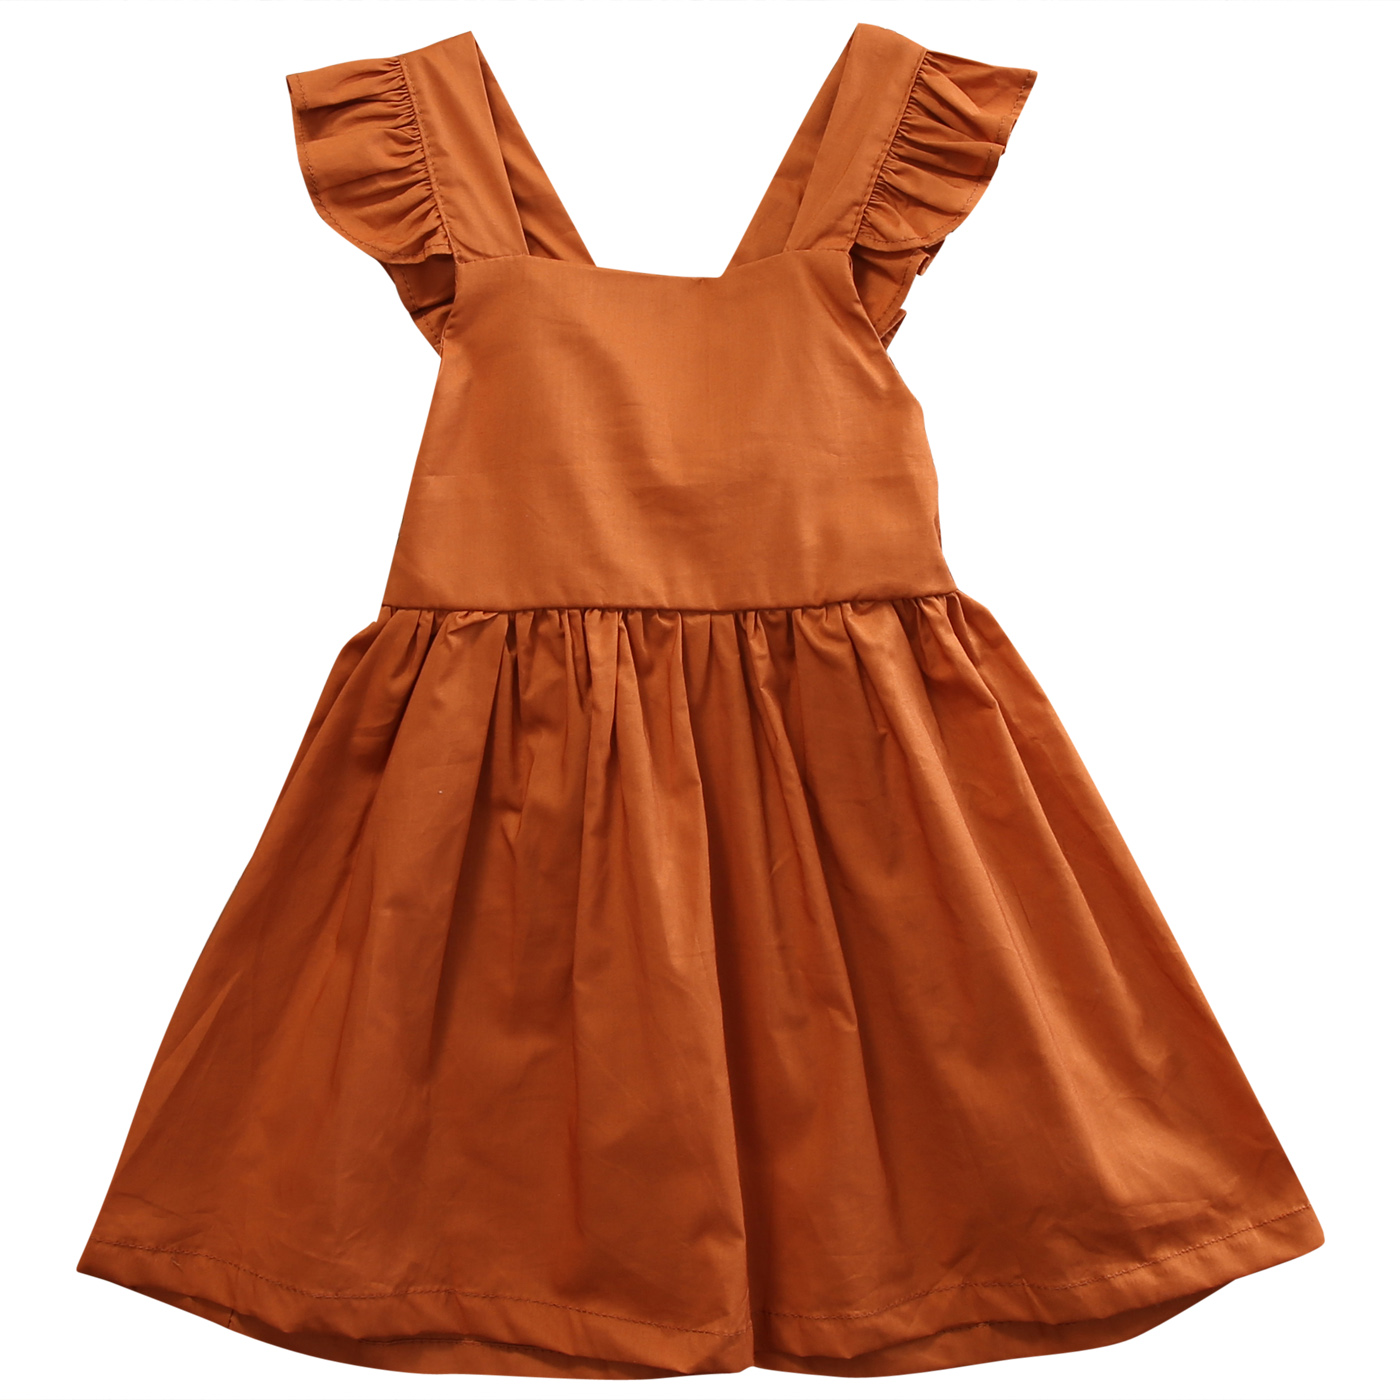 Baby Girls Infant Wedding Party Bowknot Sleeveless Ruffled Vest Dress Sundress книги питер изучаем программирование на javascript